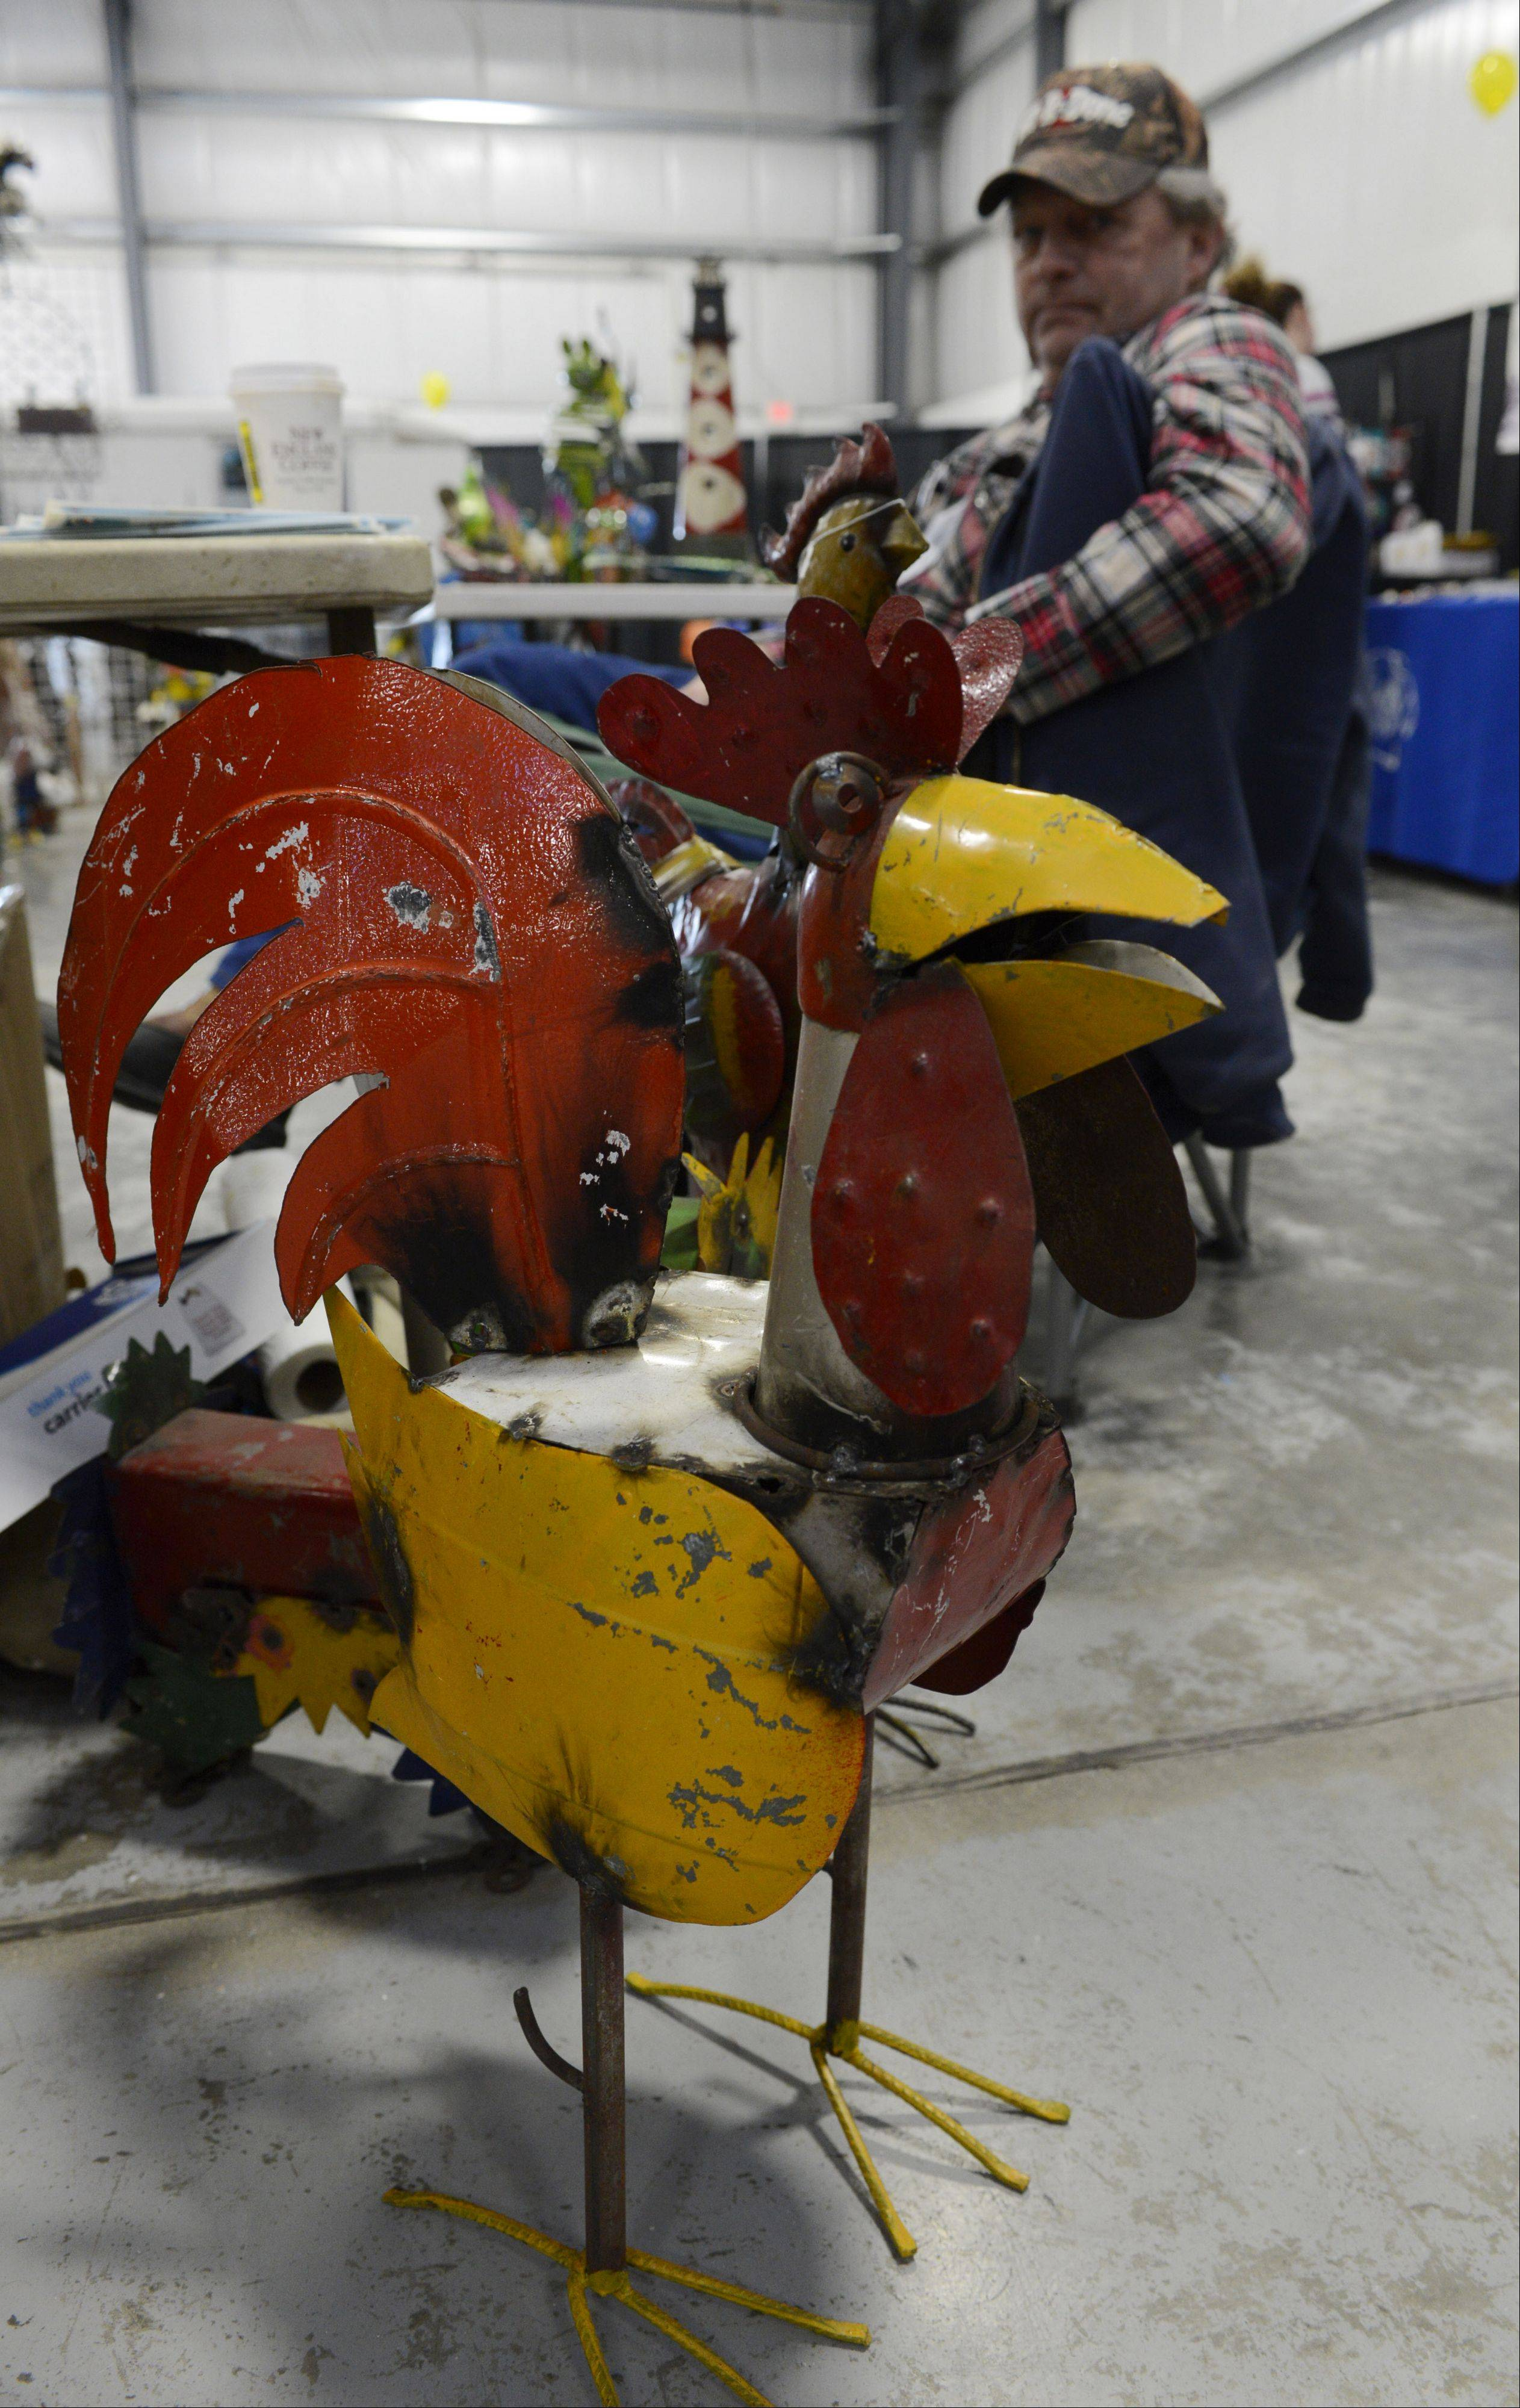 JOE LEWNARD/jlewnard@dailyherald.comA fabricated metal rooster was among the items being sold by Stan Thorson of Stan's Ornamental Iron of Ottawa, Ill., on Sunday at the Home Building and Remodeling Expo at the Lake County Fairgrounds in Grayslake. The event featured demonstrations and presentations at more than 100 booths.